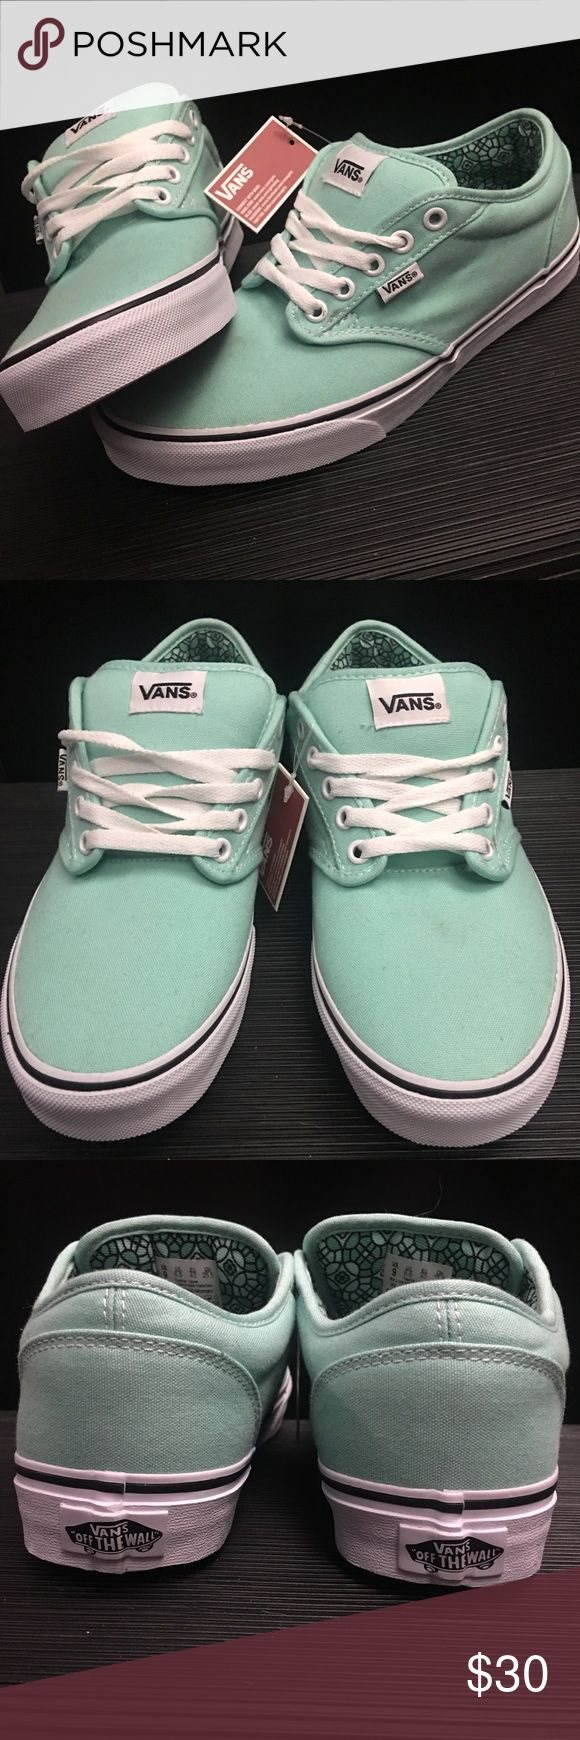 Mint Green Vans **Price Firm** Reposhing as they are a little too big for me (I'm more of an 8/8.5). They arrived with 3 small marks as pictured on left shoe near the laces, but, not noticeable at all. They just need cleaned up. 9 women Vans Shoes Sneakers